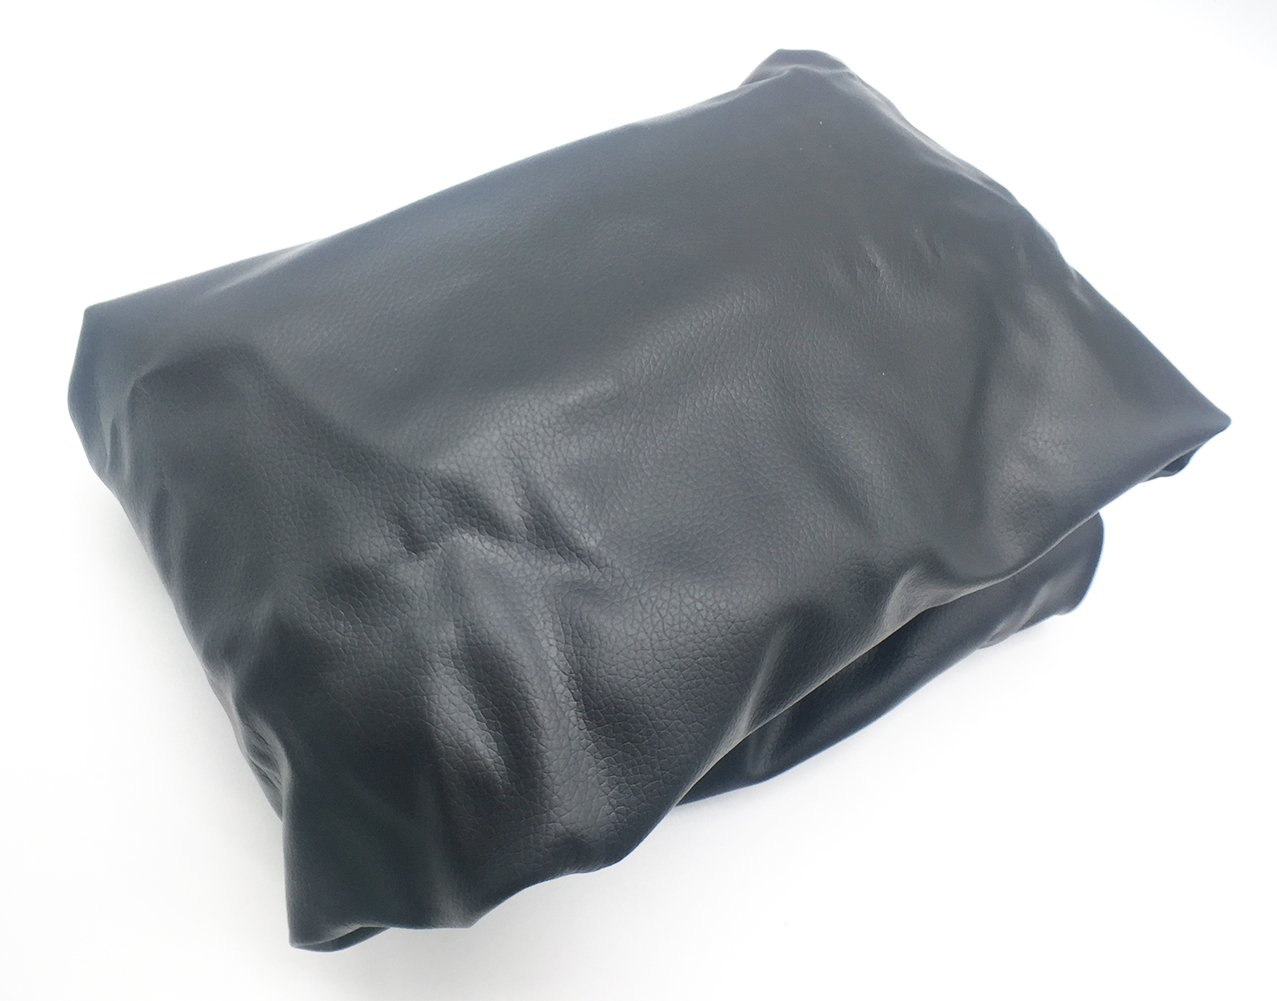 Black PU Leather Spare Tire Cover Fit for Diameter 27 to 30 FDIO 5558997343